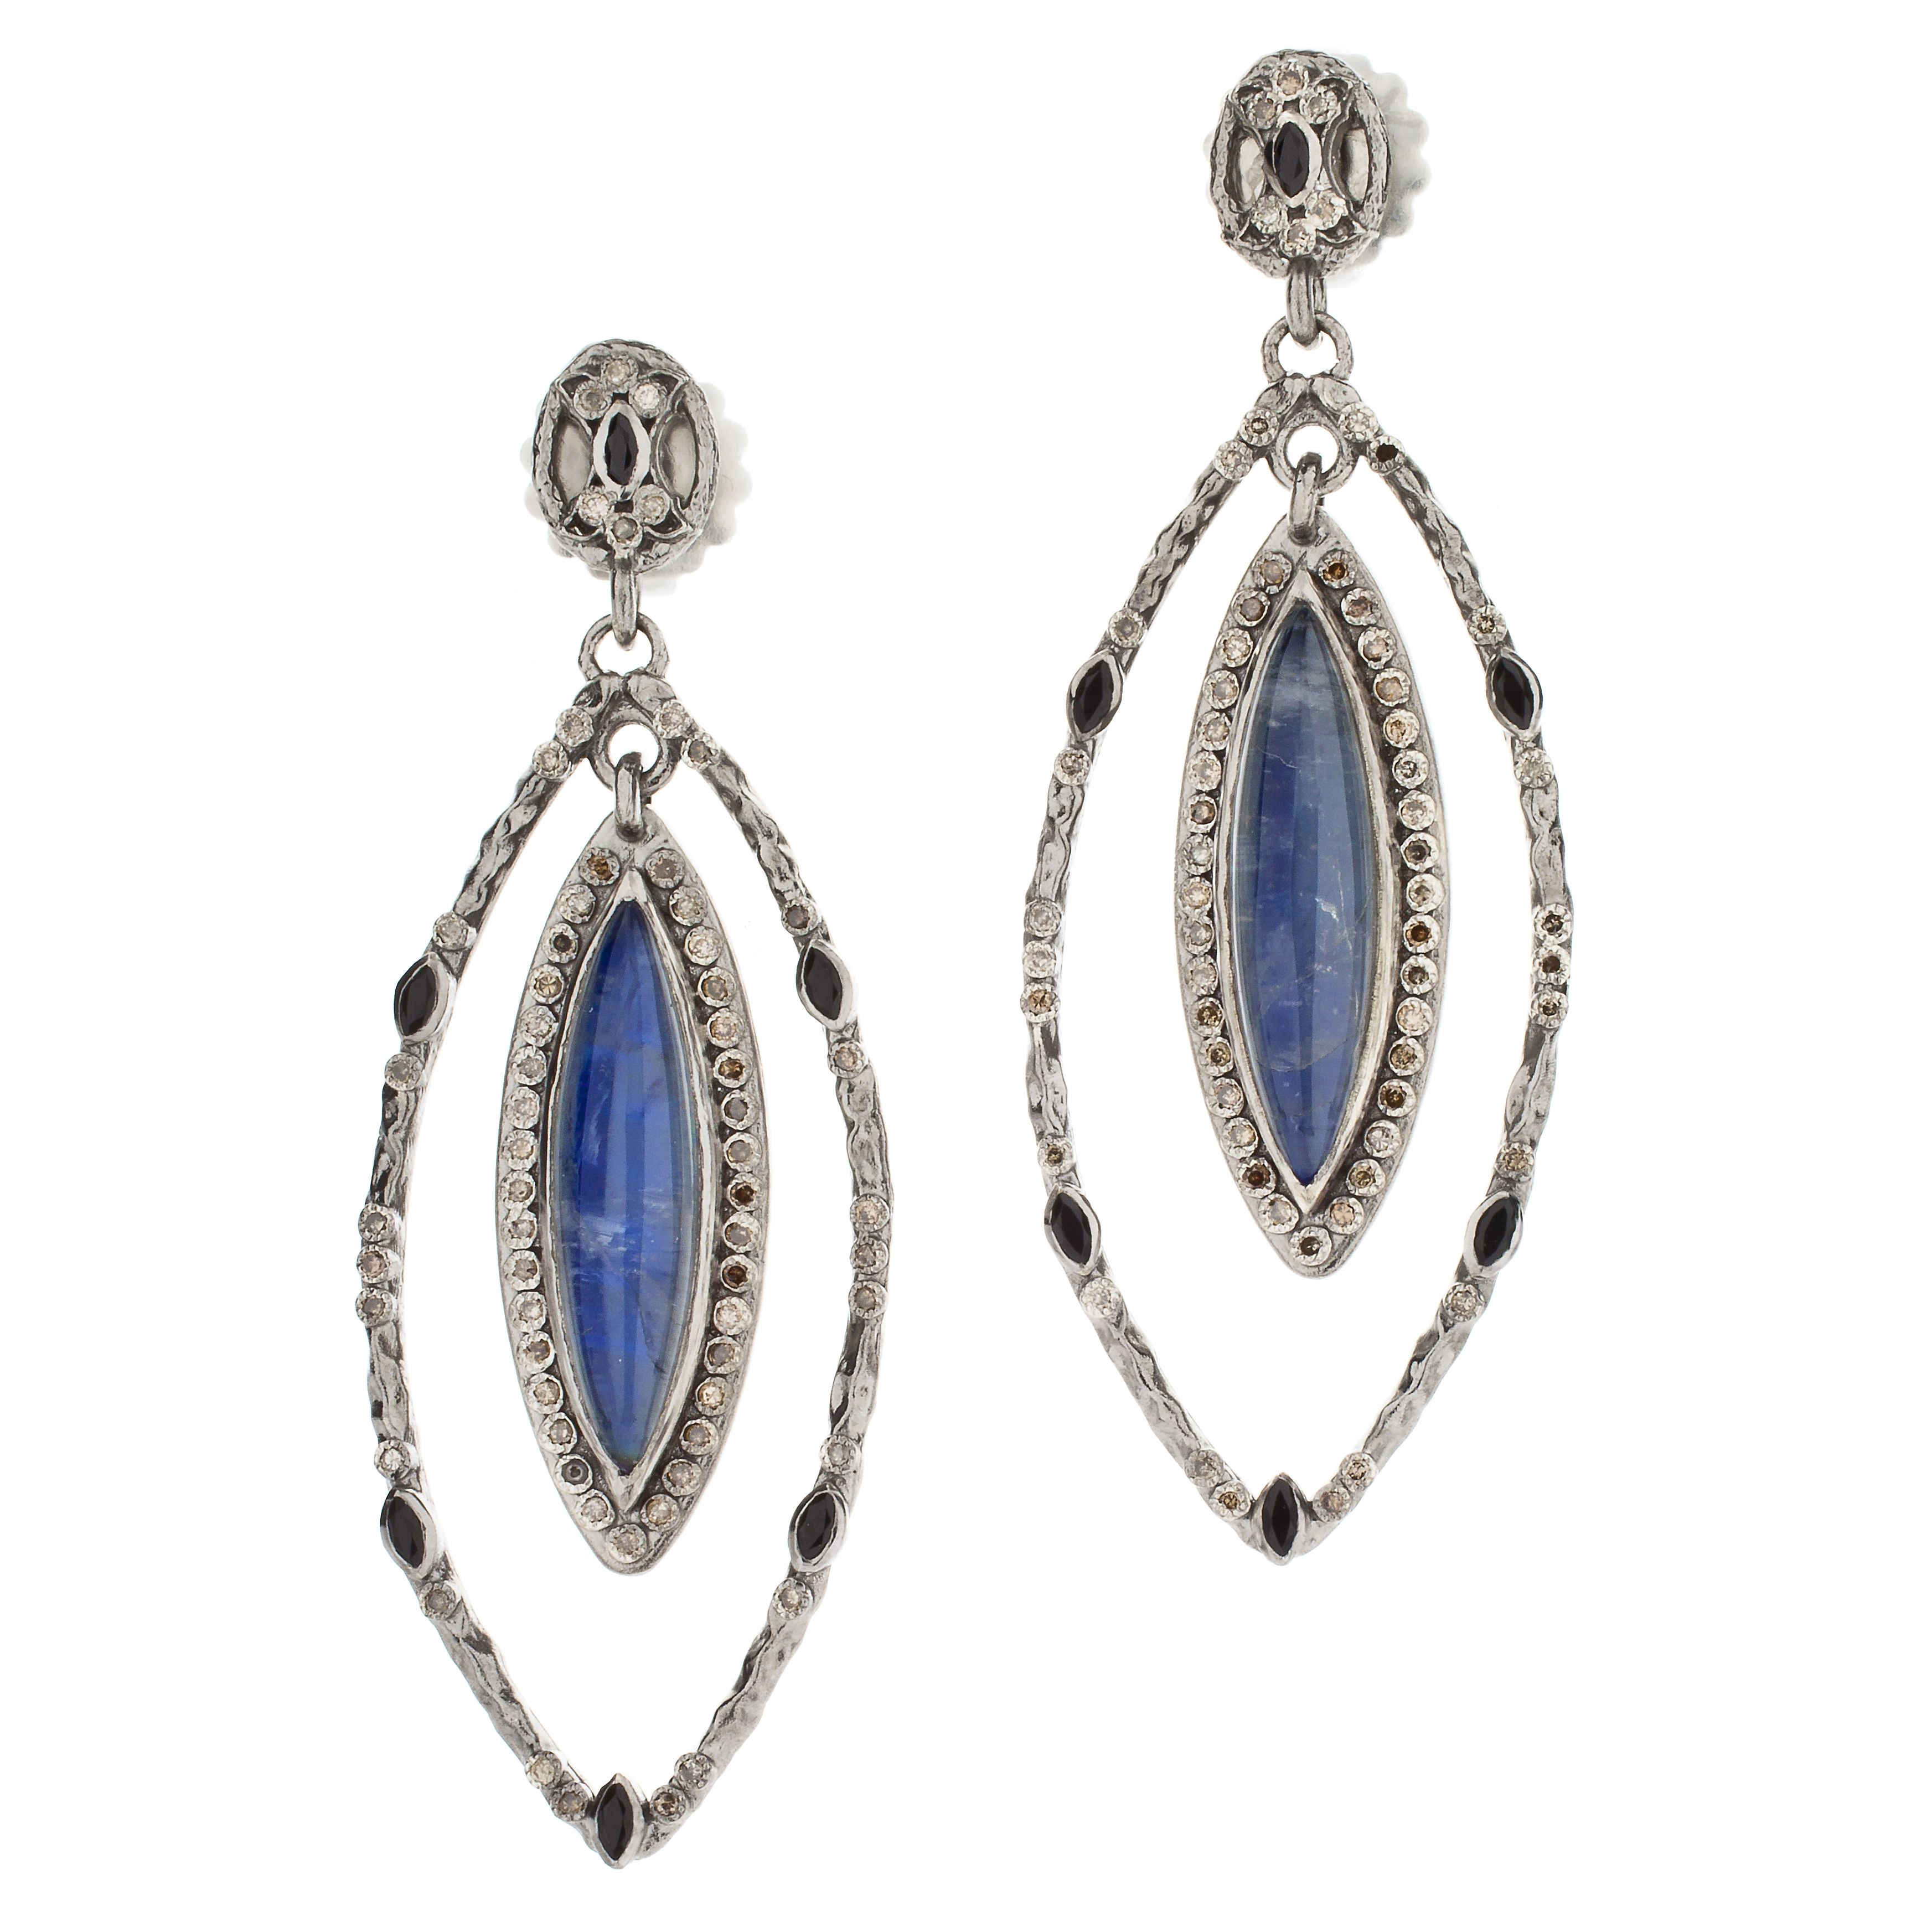 Armenta New World Rose Doublet Earrings with Diamonds NAwrp0fk